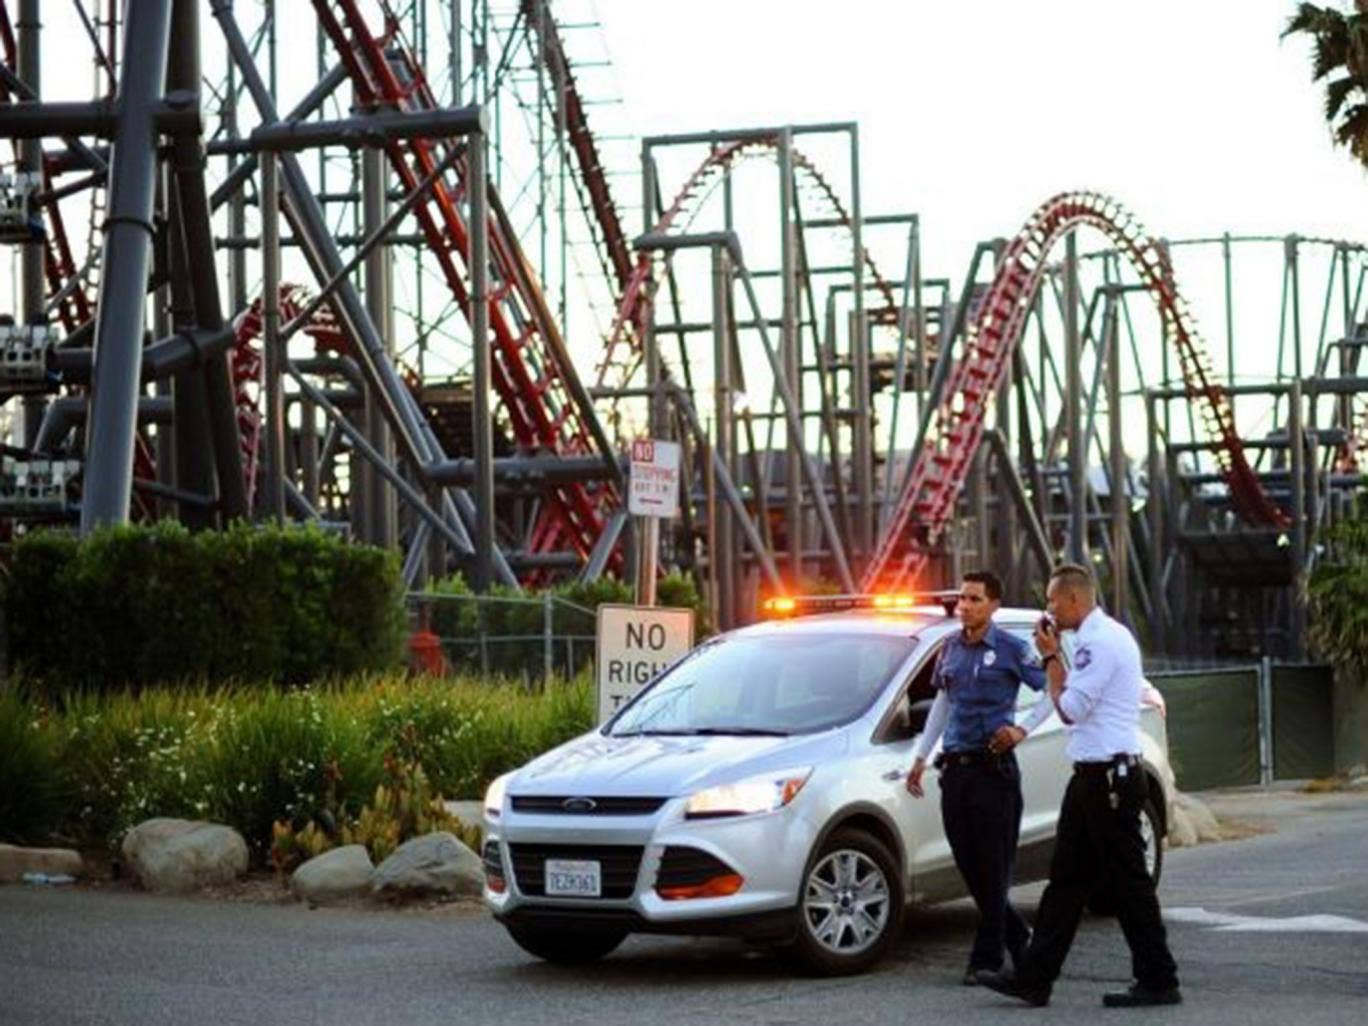 Members of the Six Flags Magic Mountain amusement park security staff monitor the situation at the exit of the park after riders were injured on the Ninja coaster Monday, July 7,